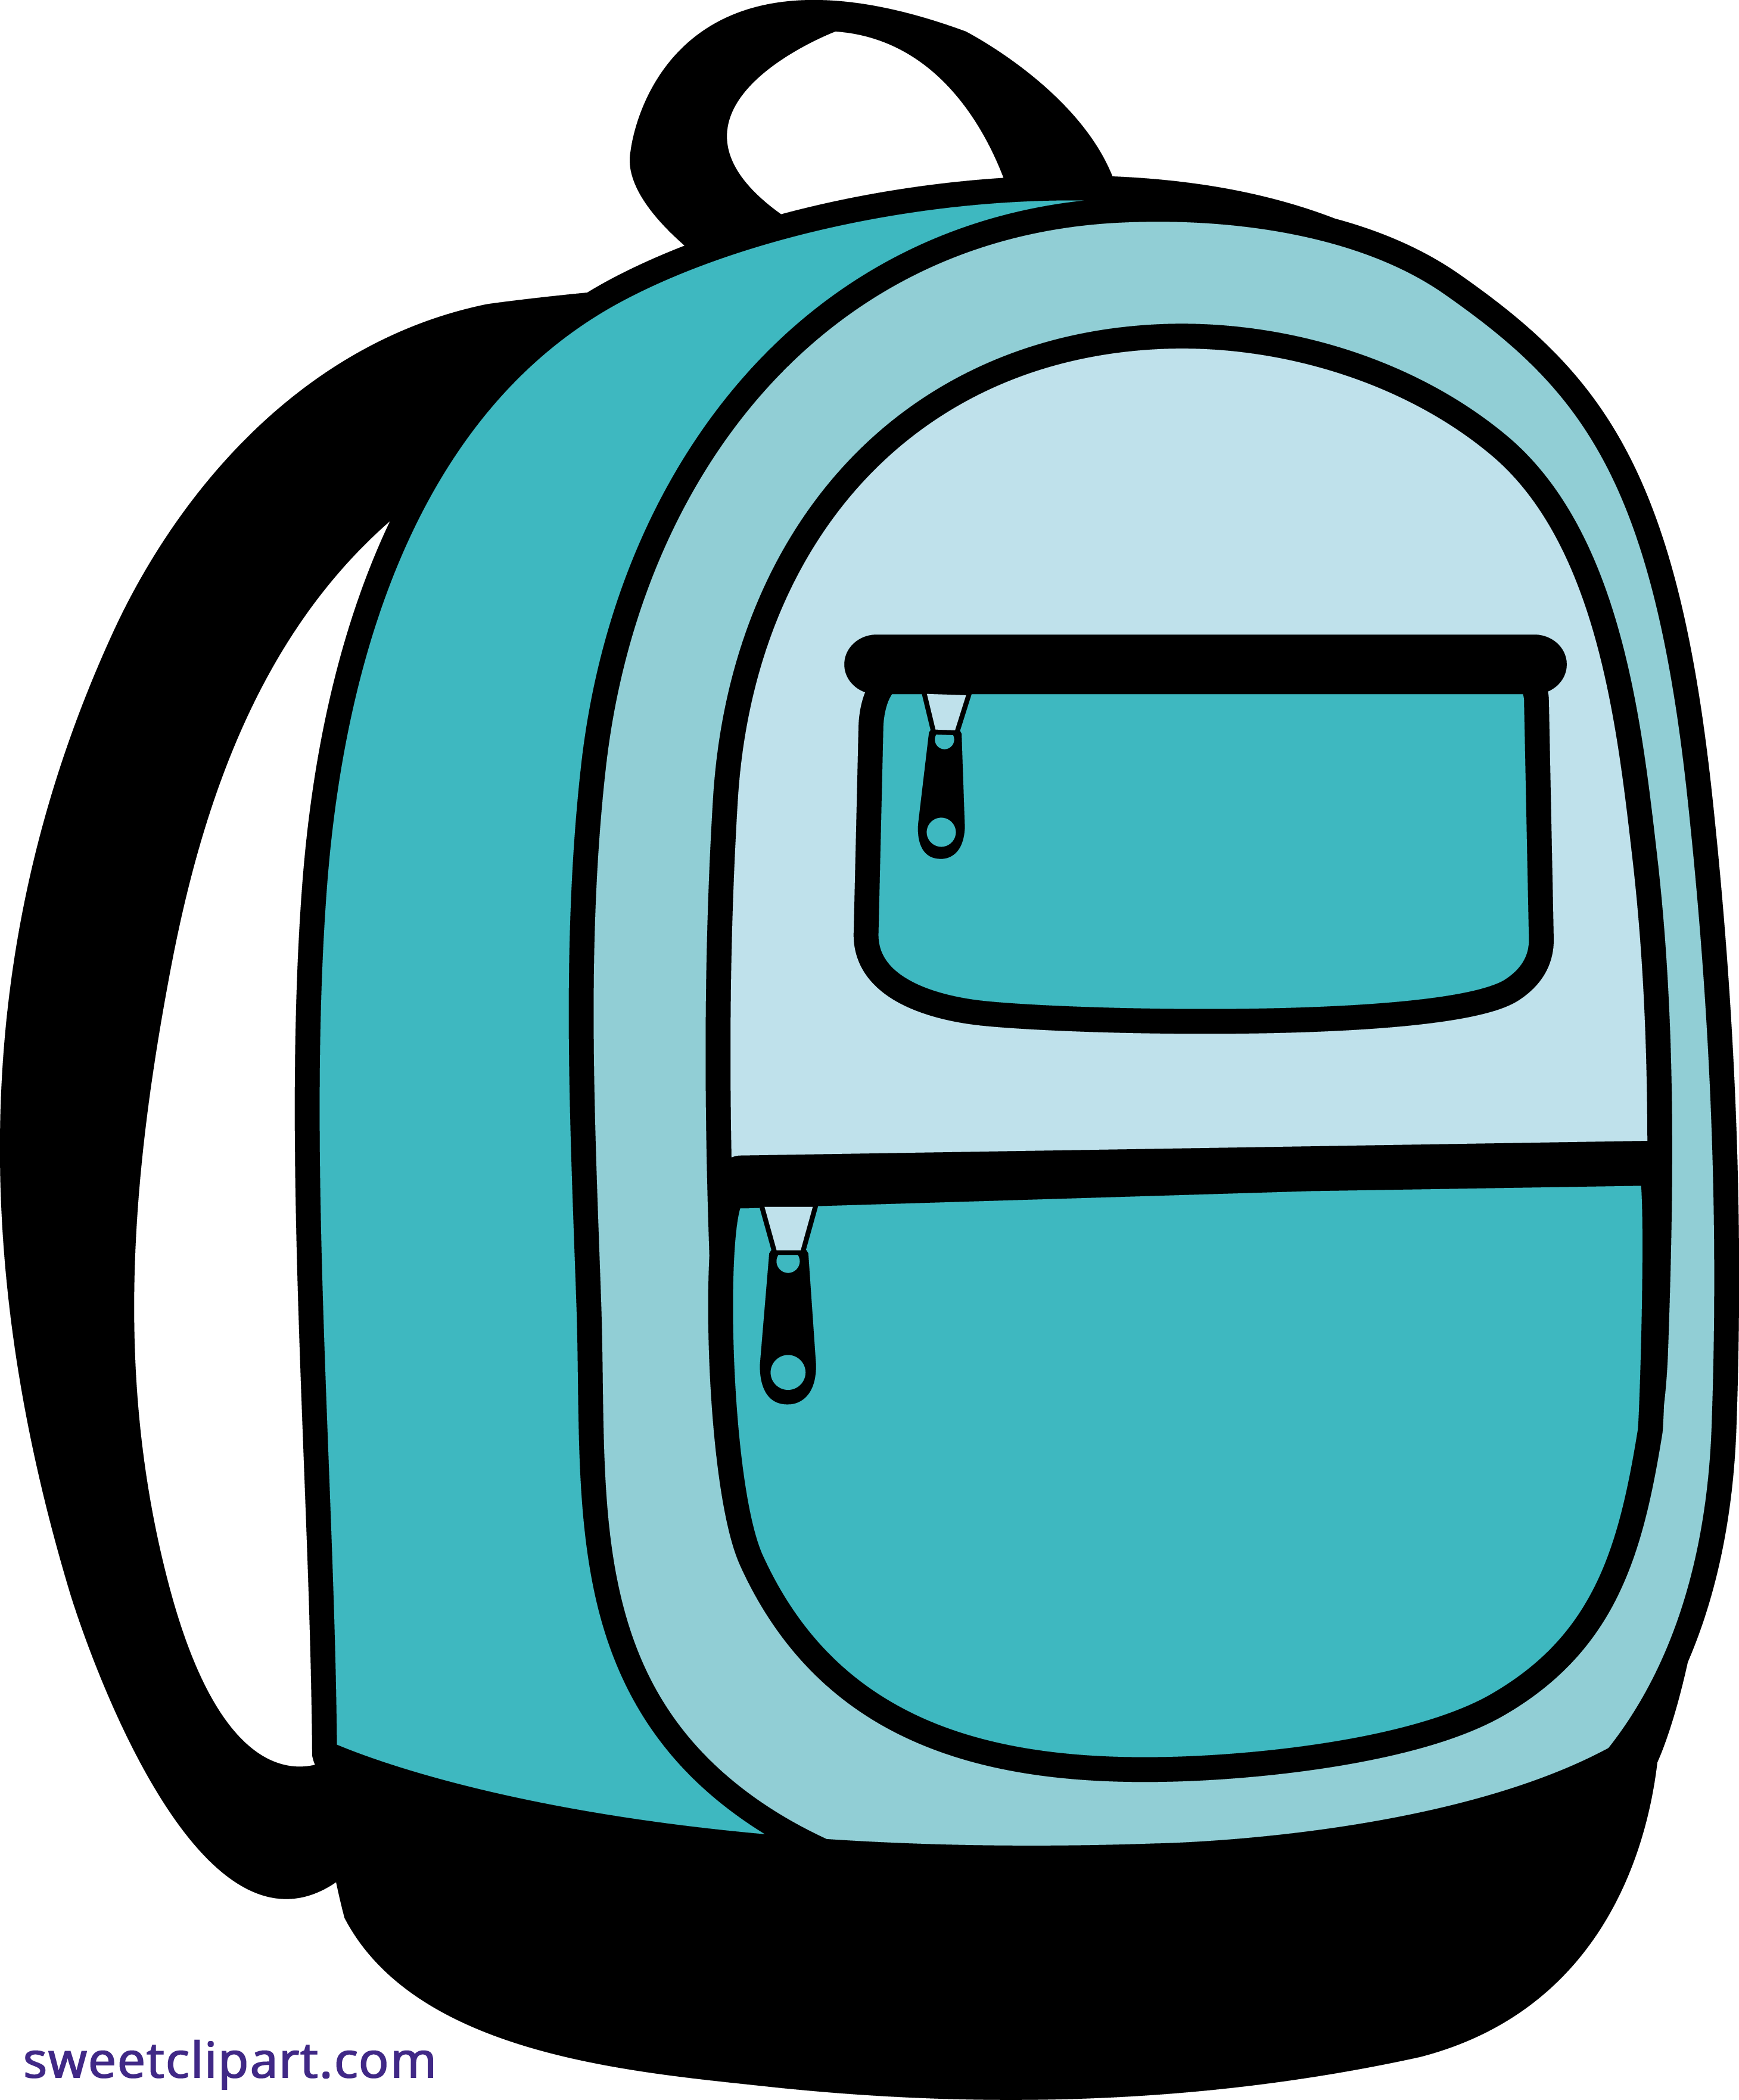 Bookbag clipart clip art FREE for download on rpelm royalty free library